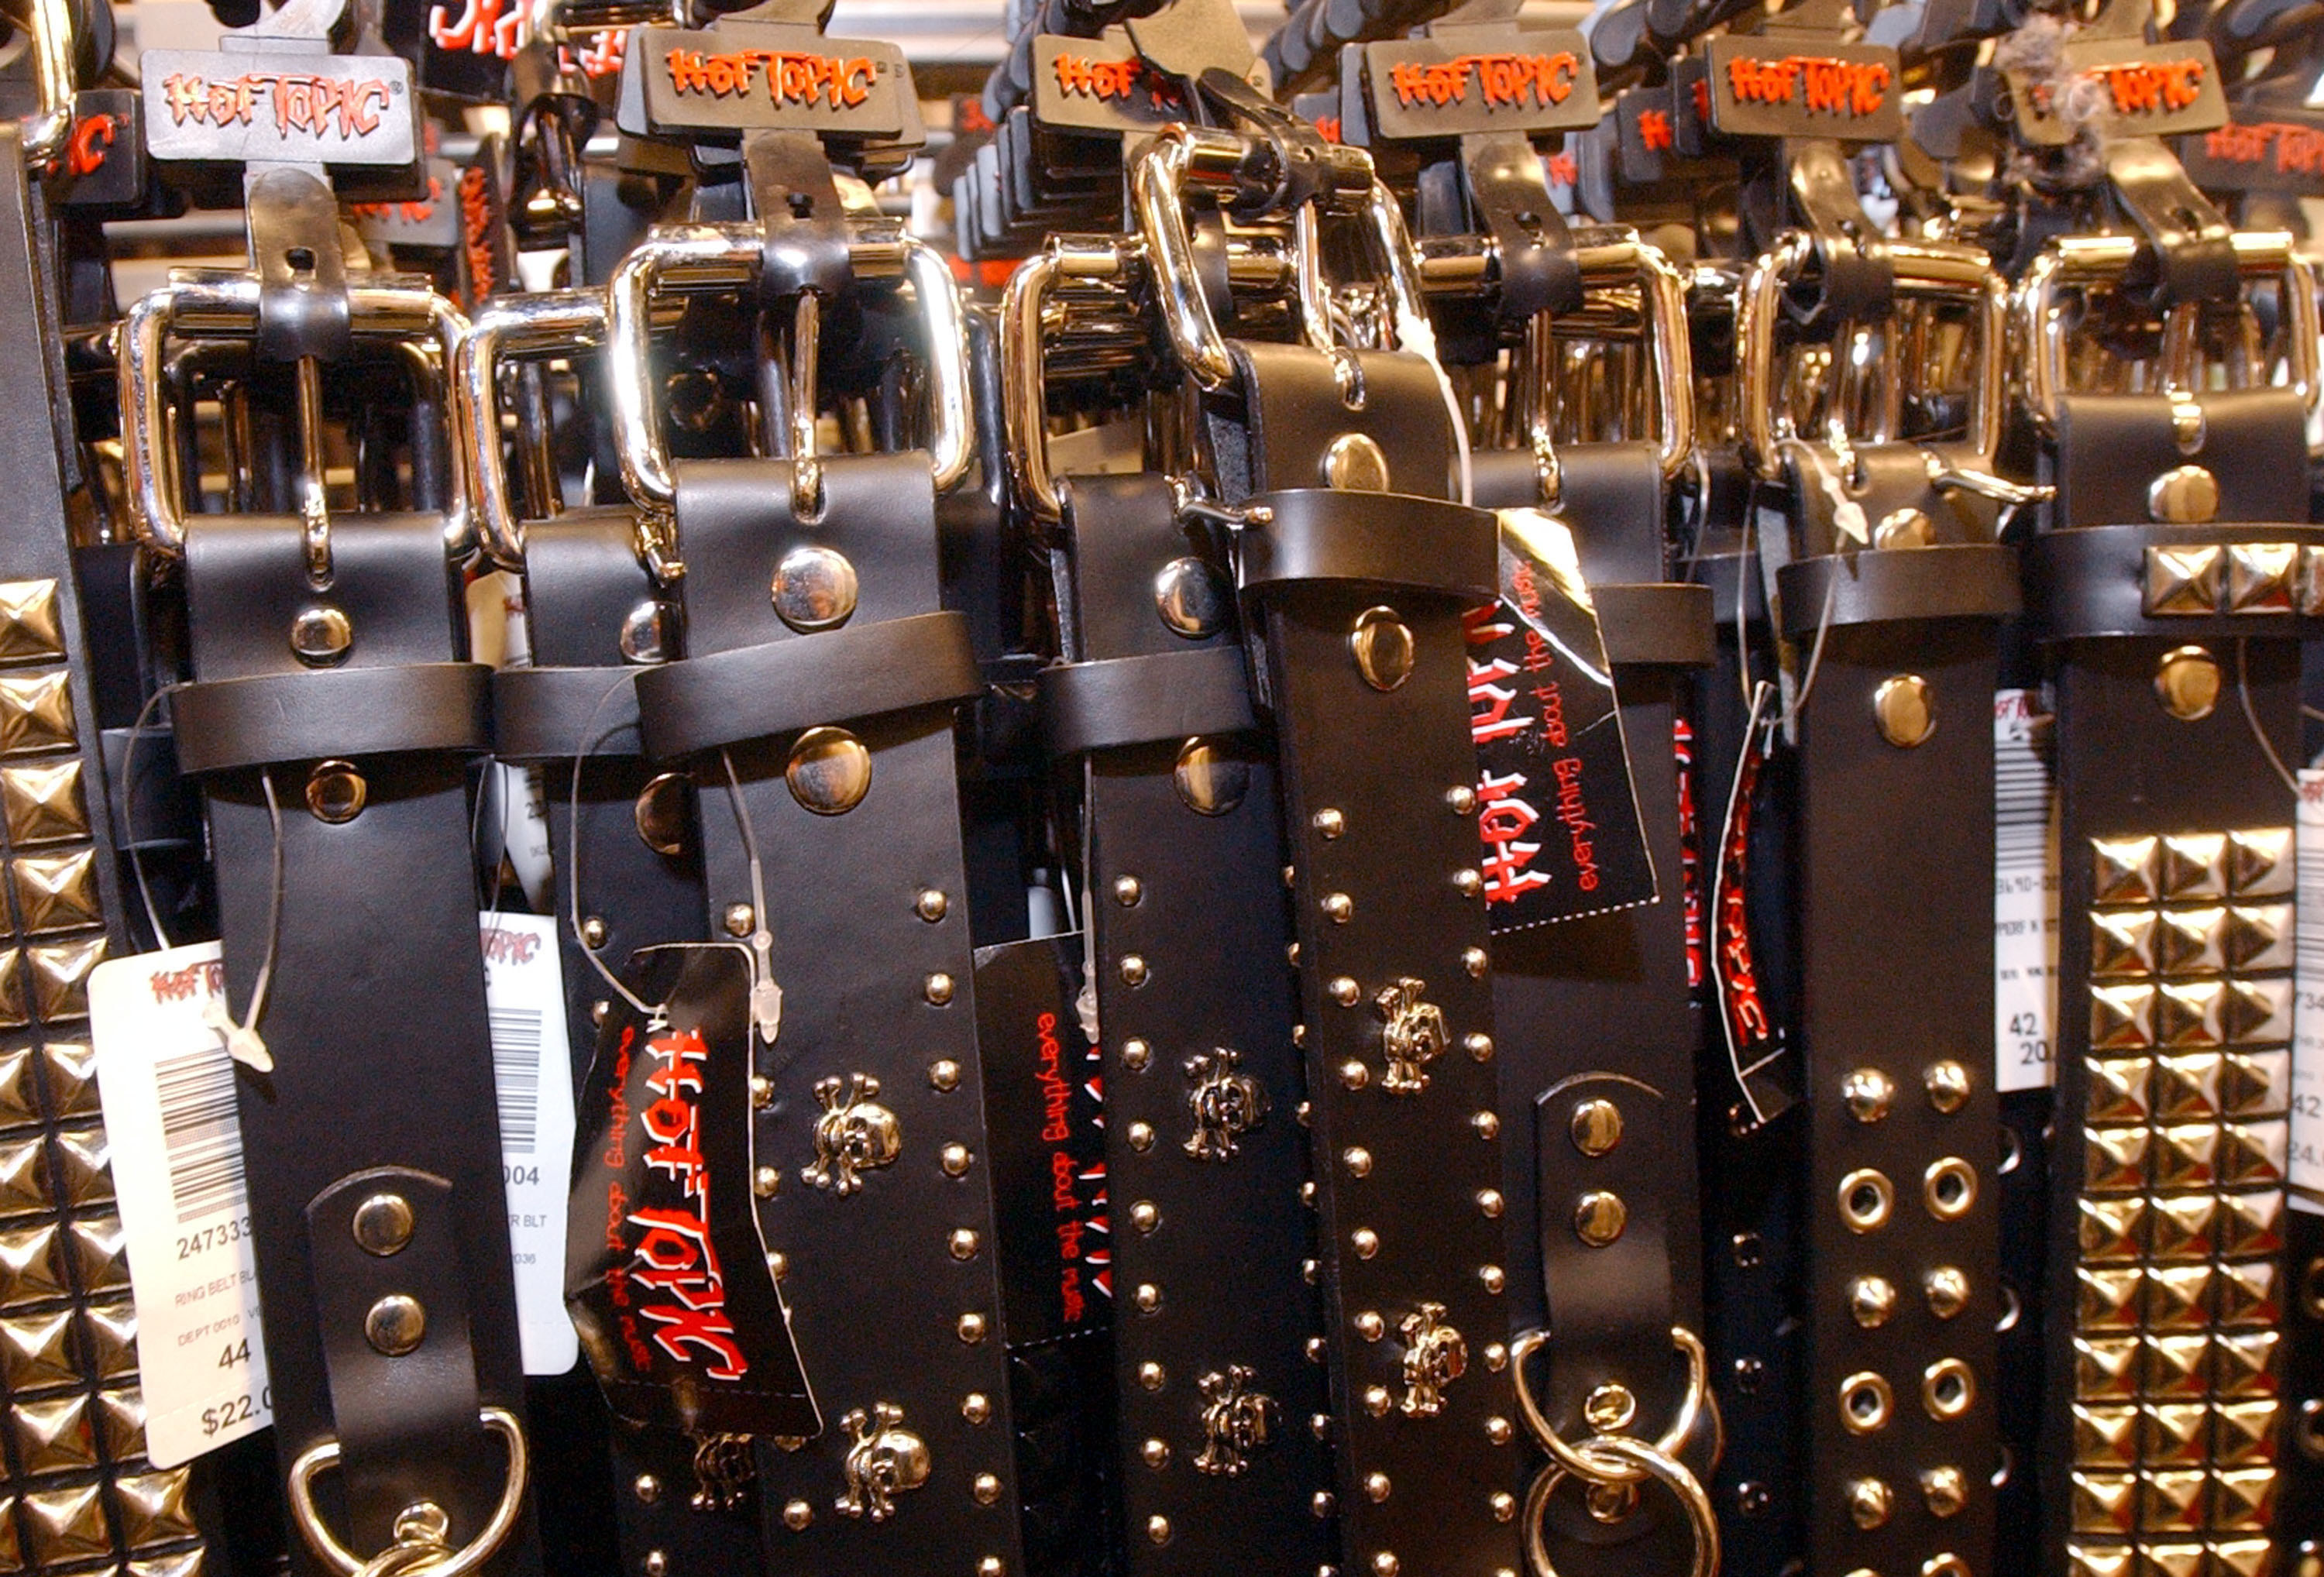 A close-up photo of a bunch of belts hanging on a rack in a Hot Topic.